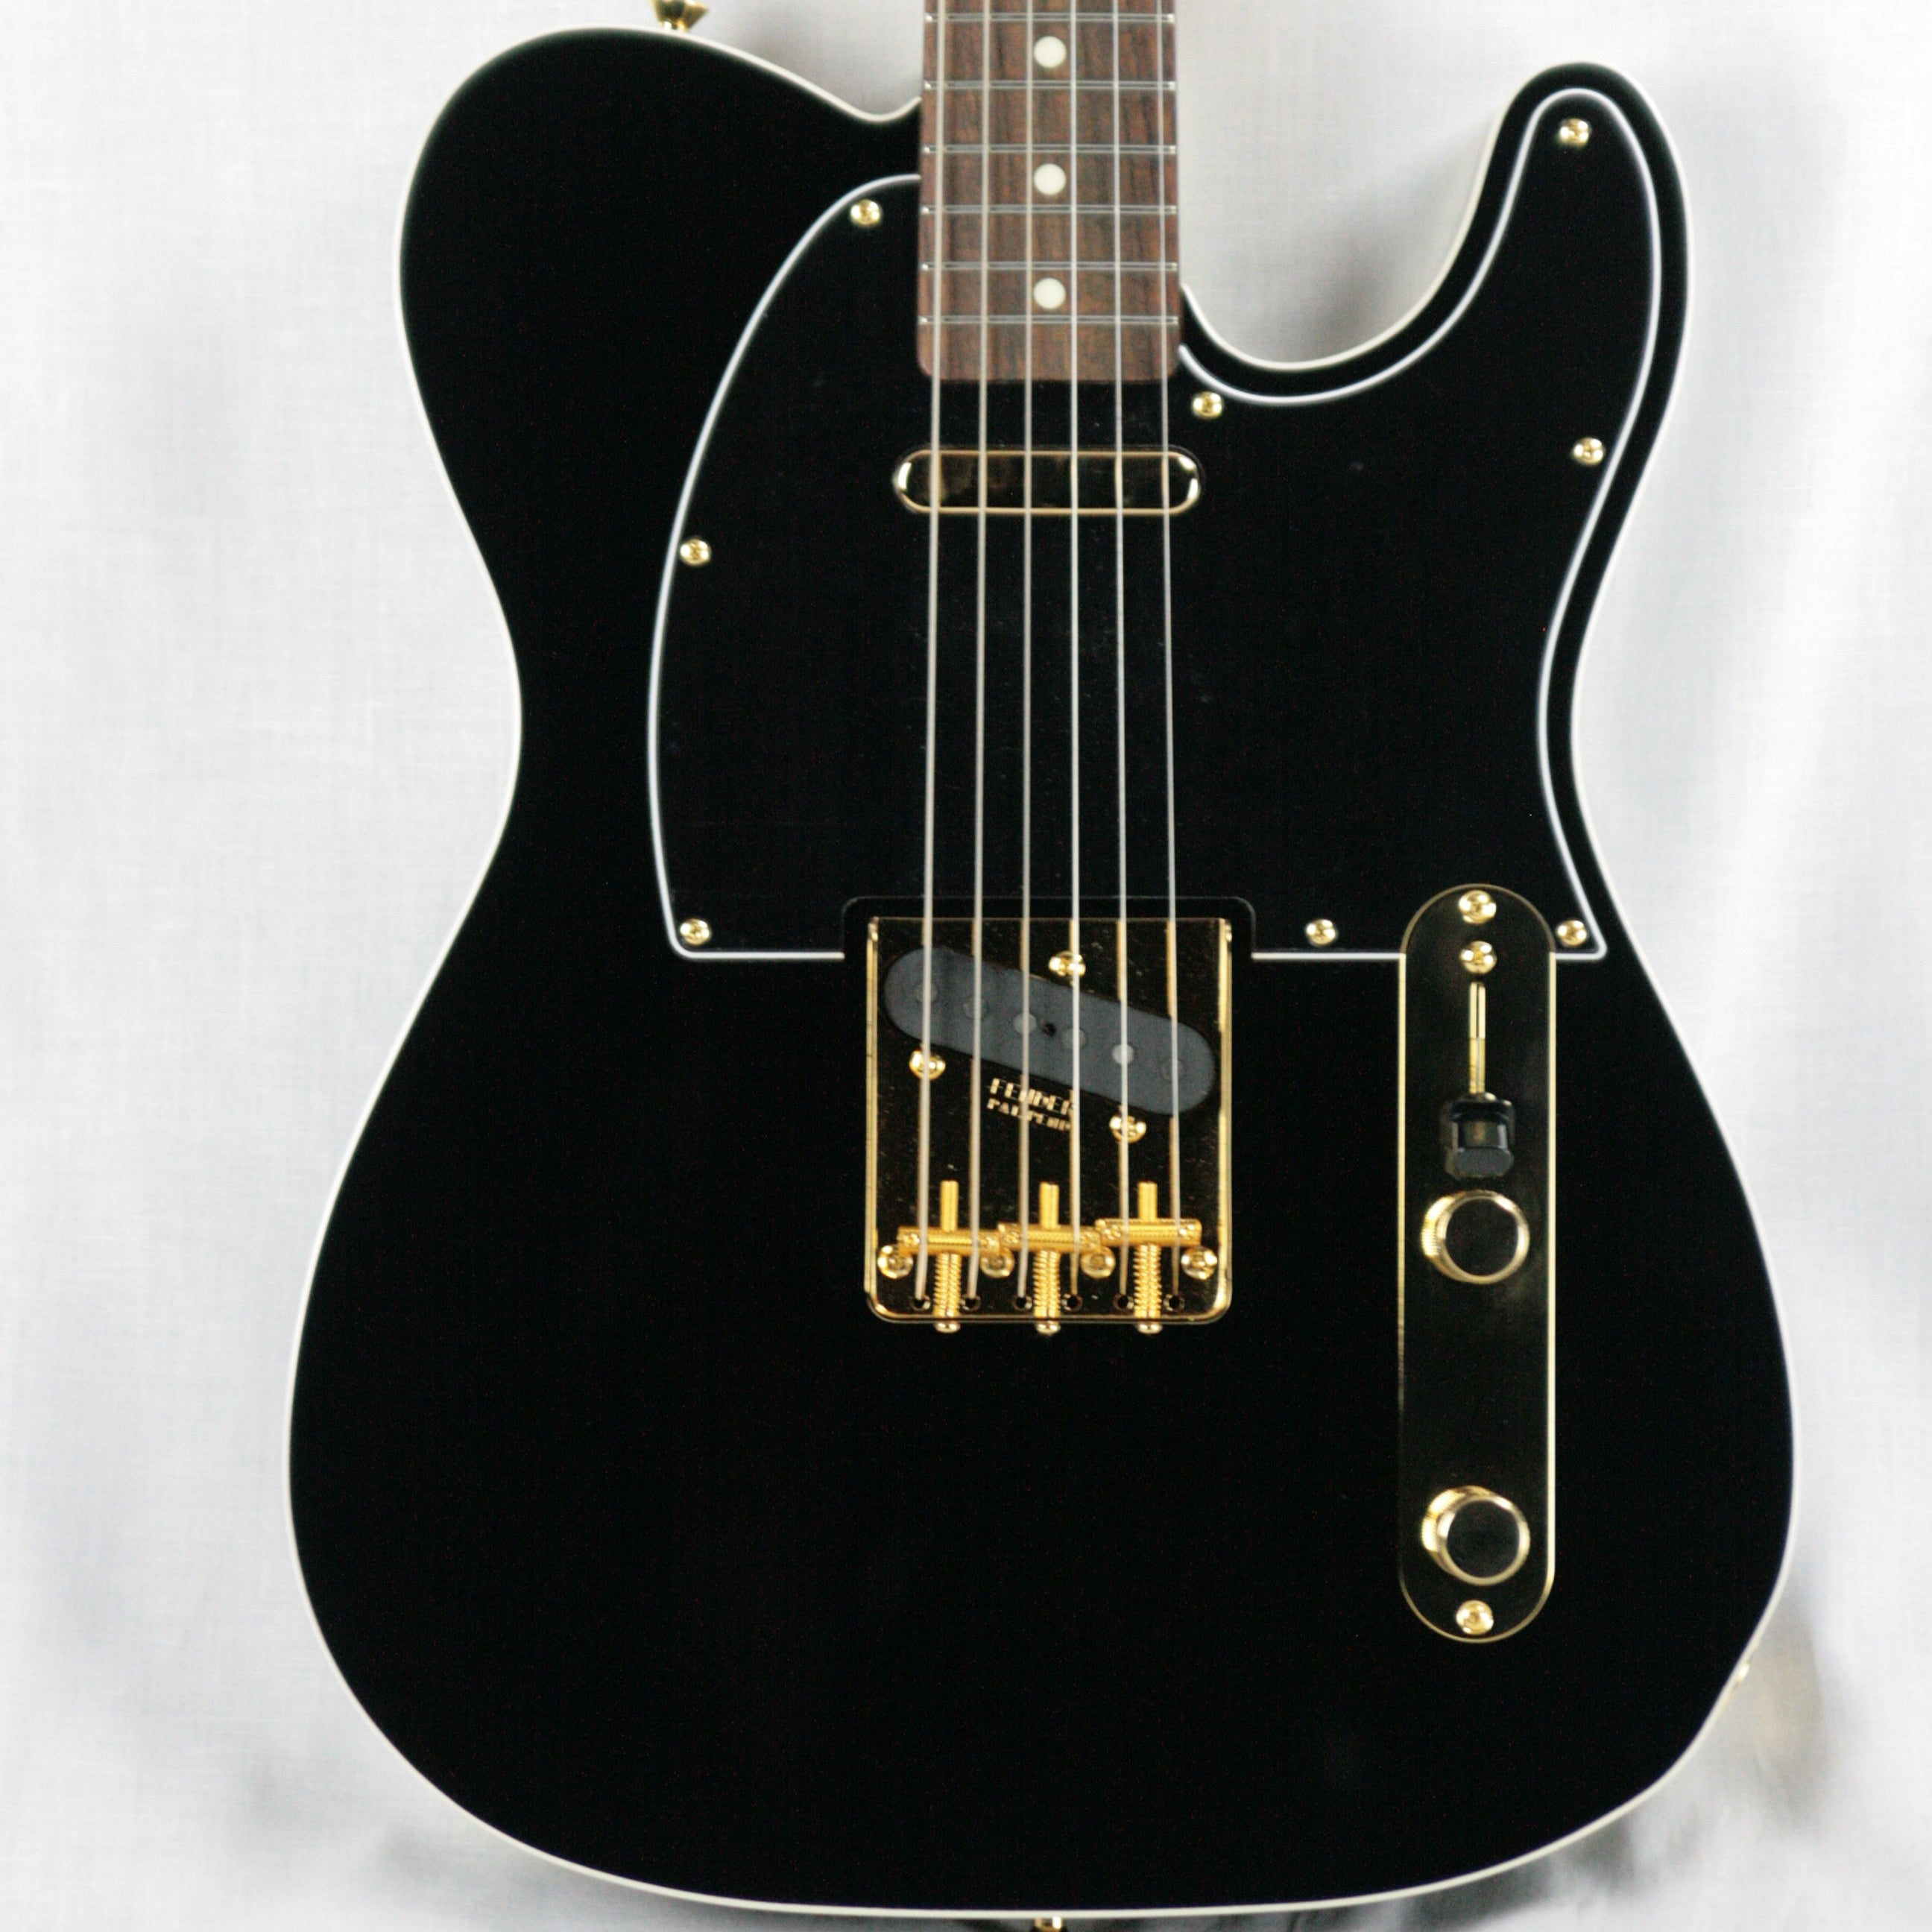 2018 Fender FSR Japan Traditional 60s Midnight Telecaster Custom MIJ! Double-Bound Matching Headstock